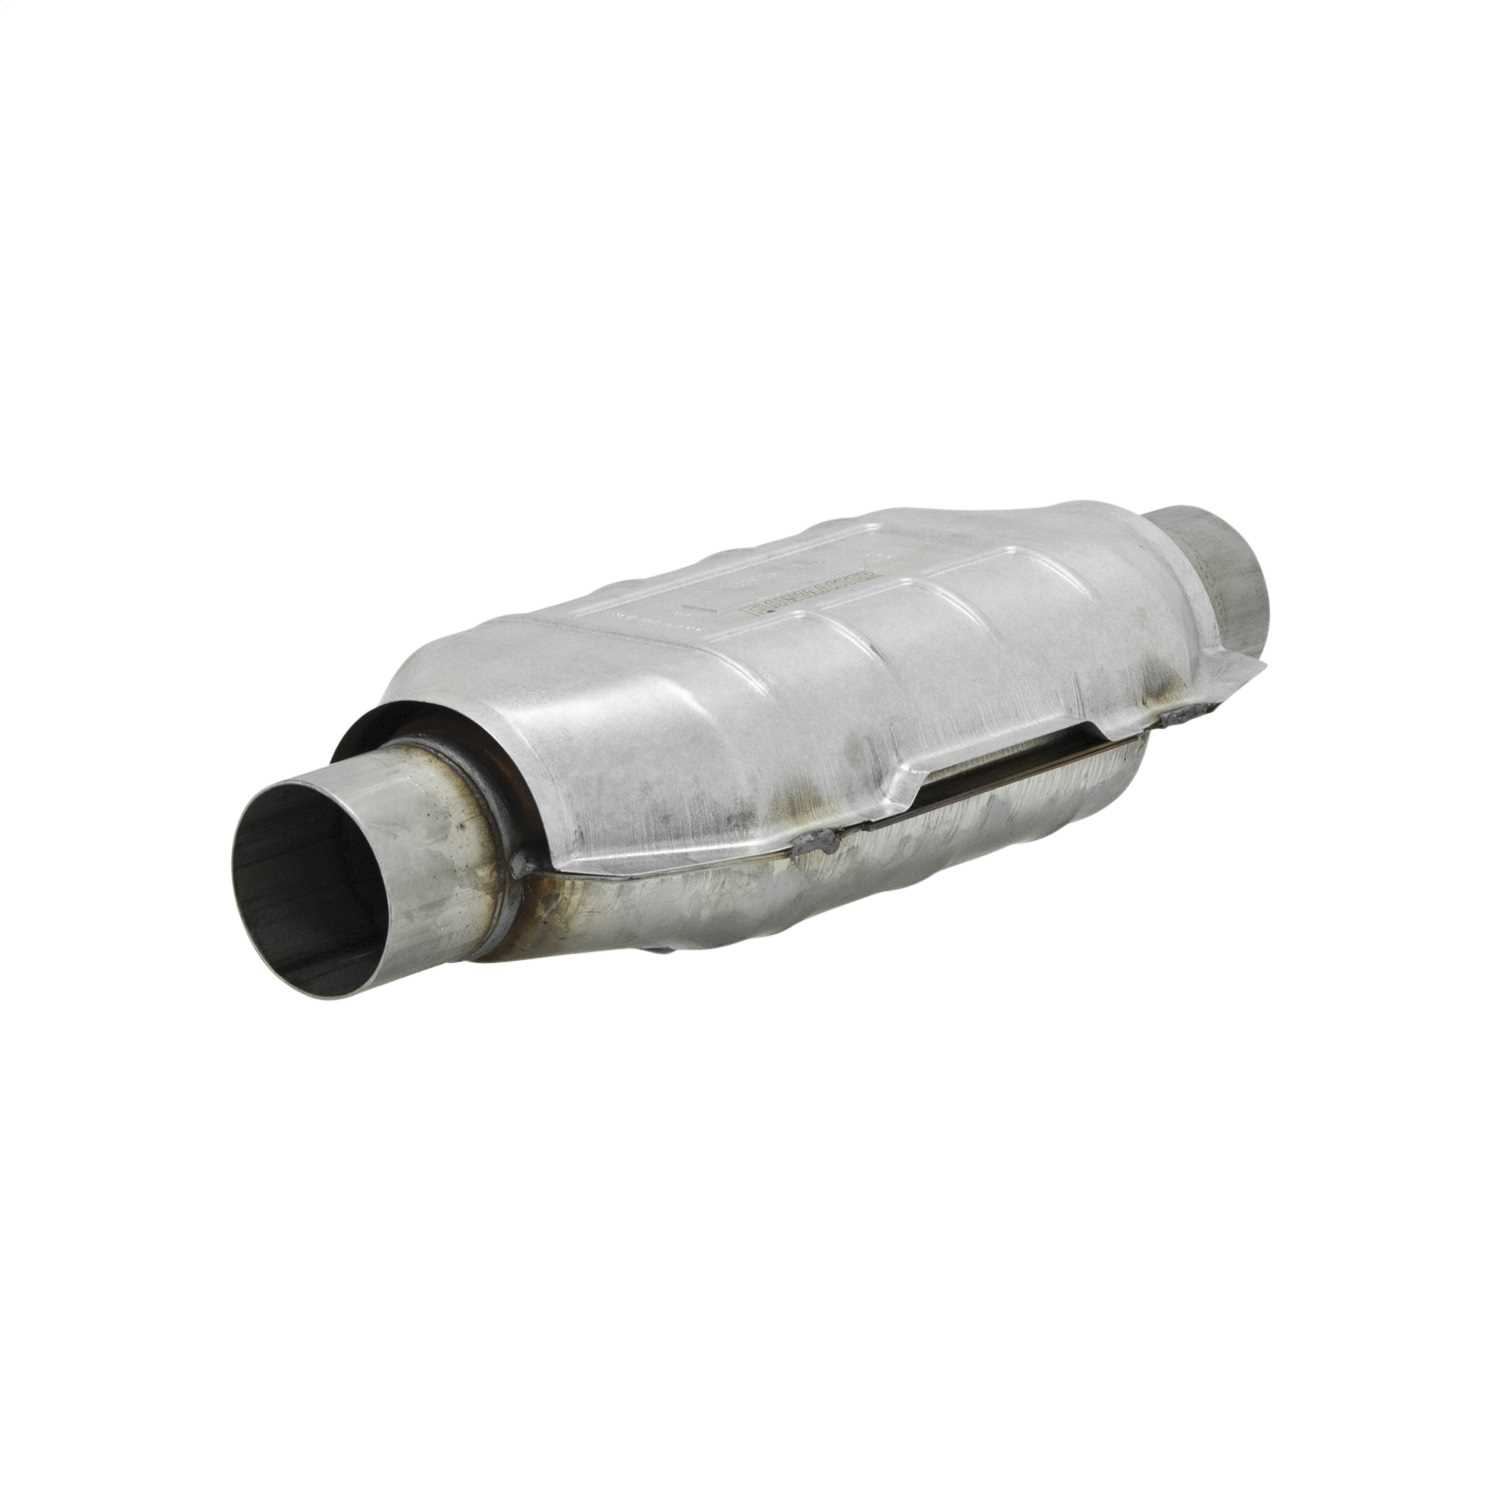 2400224 Flowmaster 49 State Catalytic Converters Universal Catalytic Converter